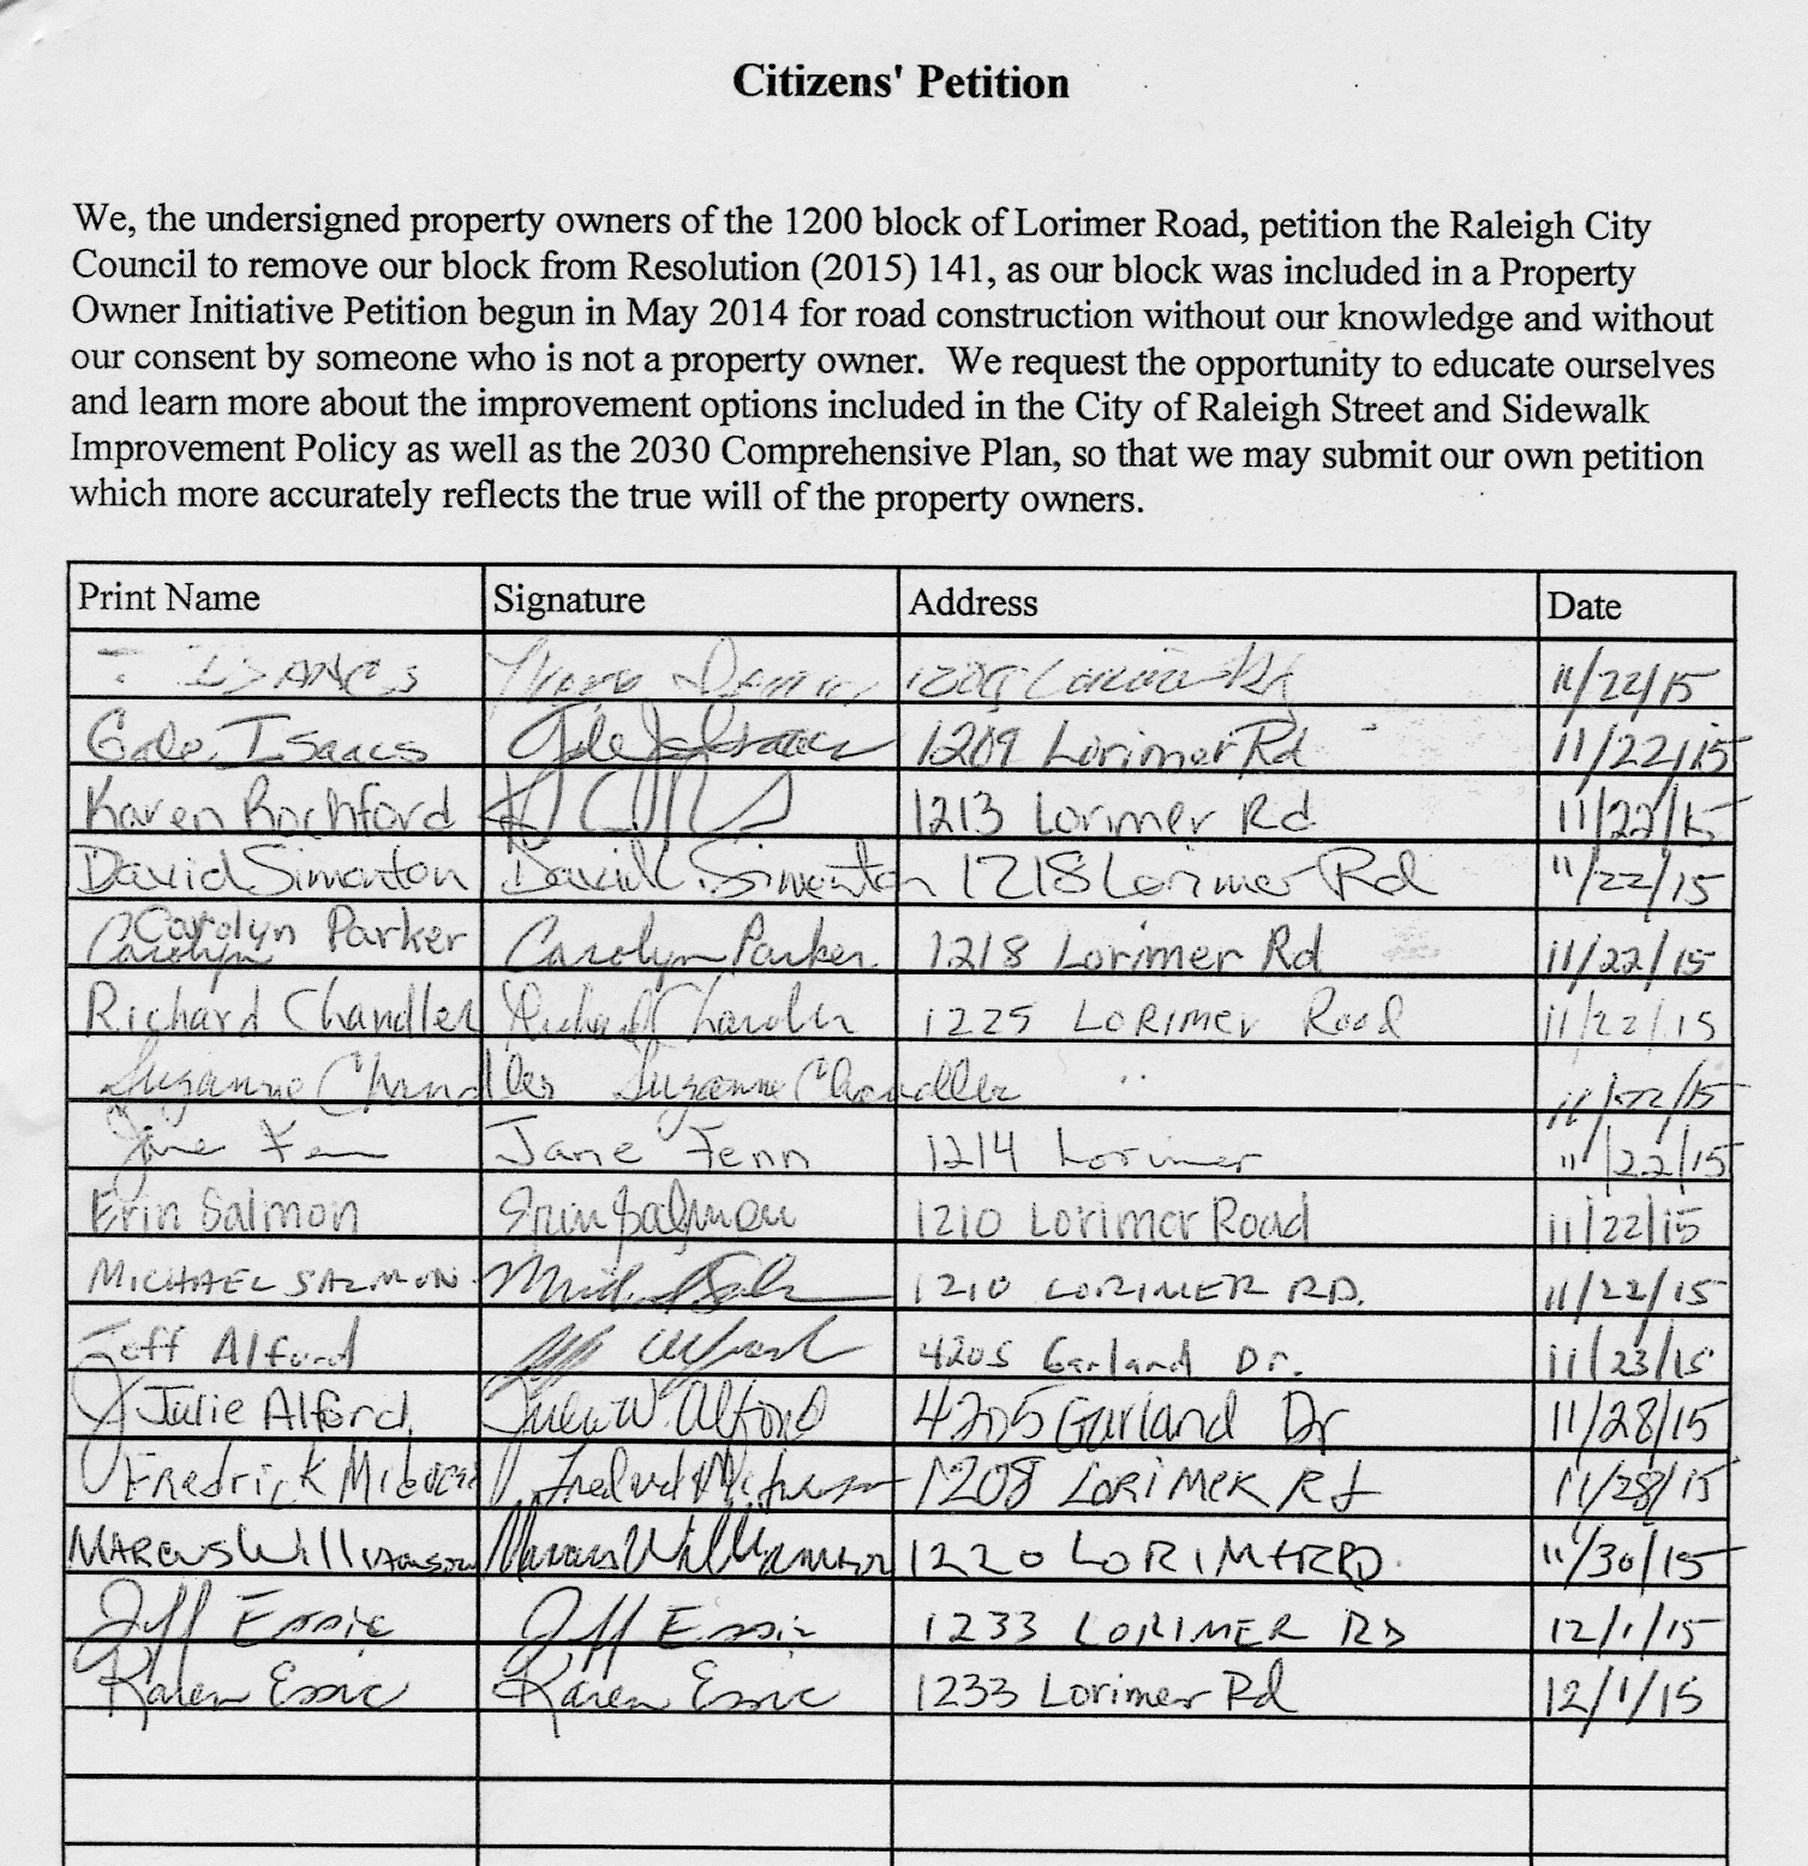 citizen u2019s petition  u2013 1200 block residents